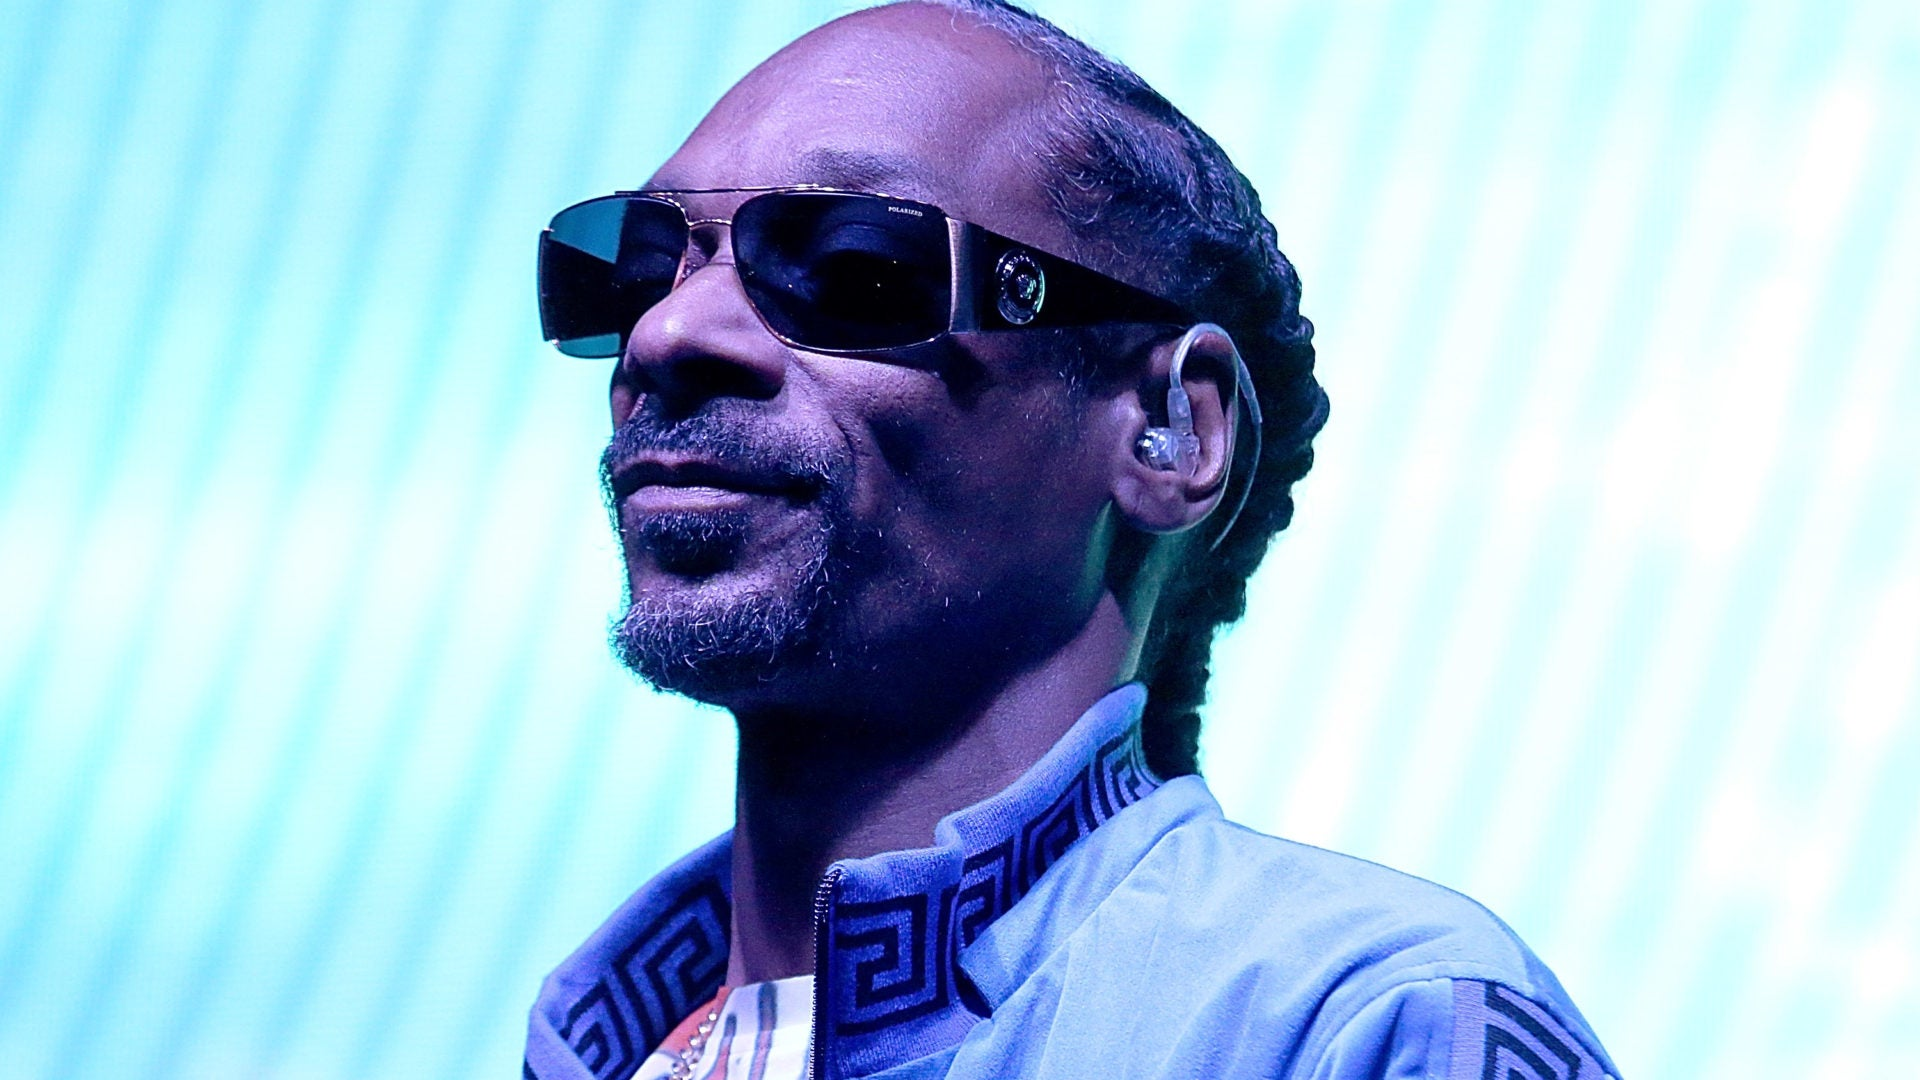 Snoop Dogg's Family Mourns The Loss Of His Grandson, Who Passed Away At 10 Days Old